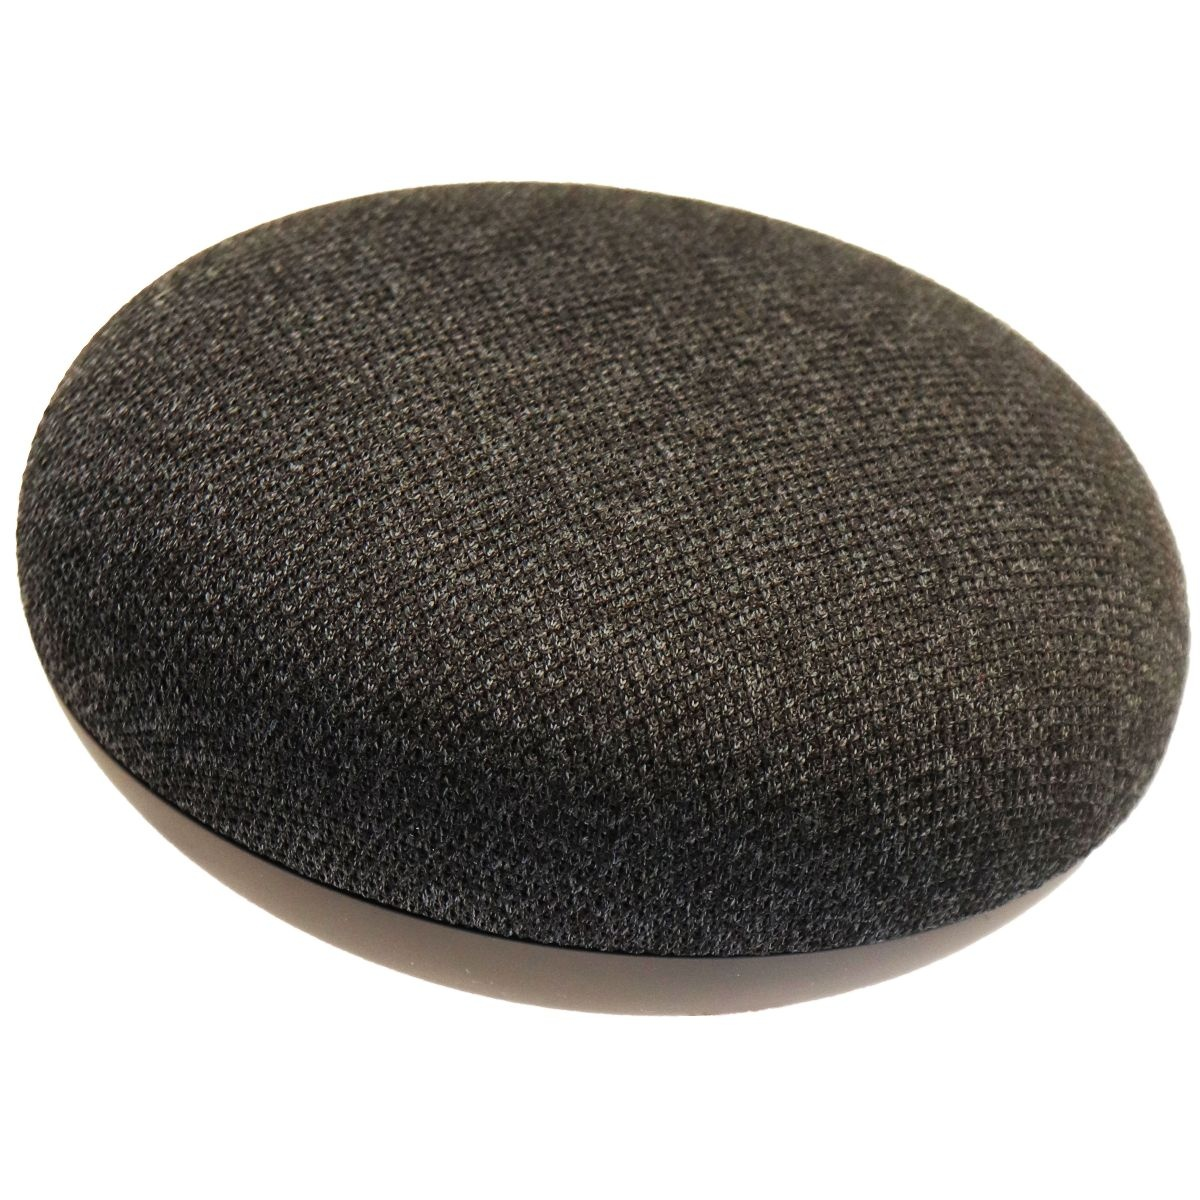 Google Home Mini Personal Assistant Smart Speaker - Charcoal Gray (GA00216-US)